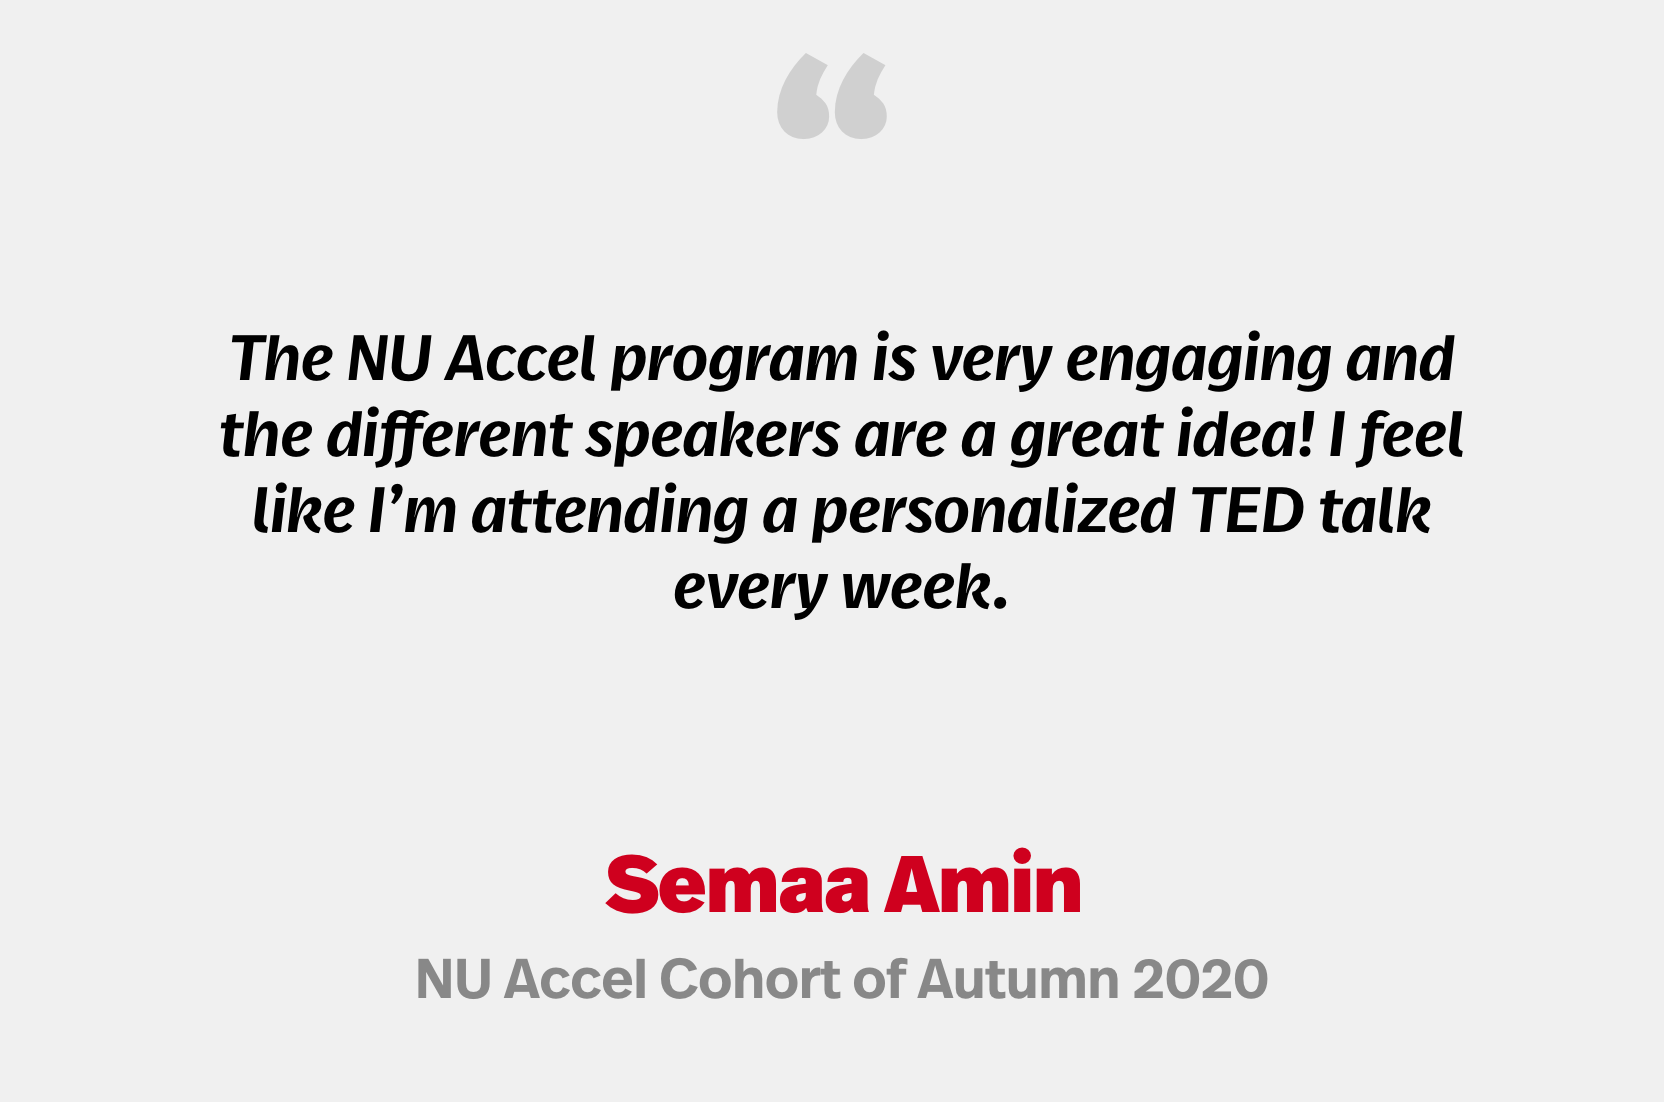 """""""The NU Accel program is very engaging and the different speakers are a great idea! I feel like I'm attending a personalized TED talk every week."""" Semaa Amin, NU Accel Cohort of Autumn 2020"""